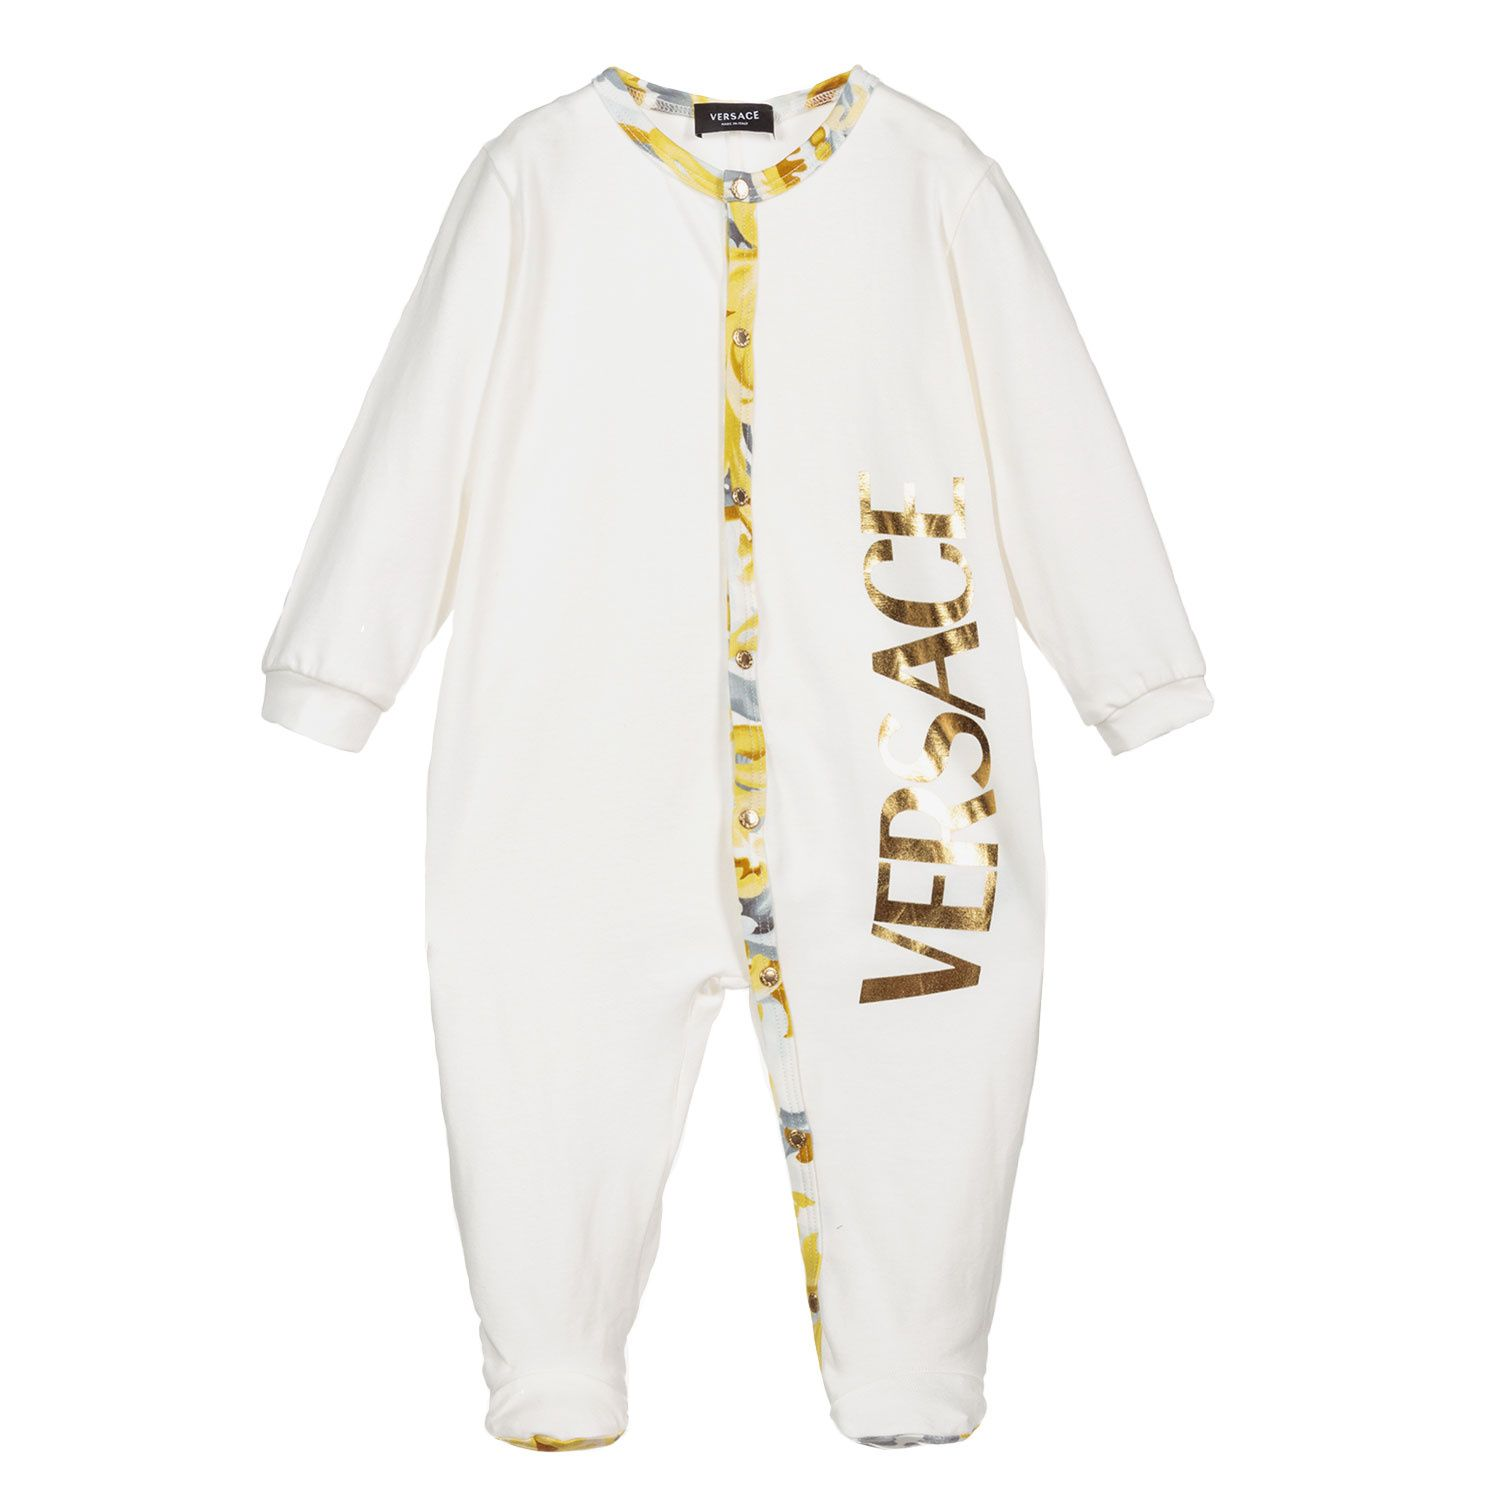 Picture of Versace 1A01076 baby playsuit white